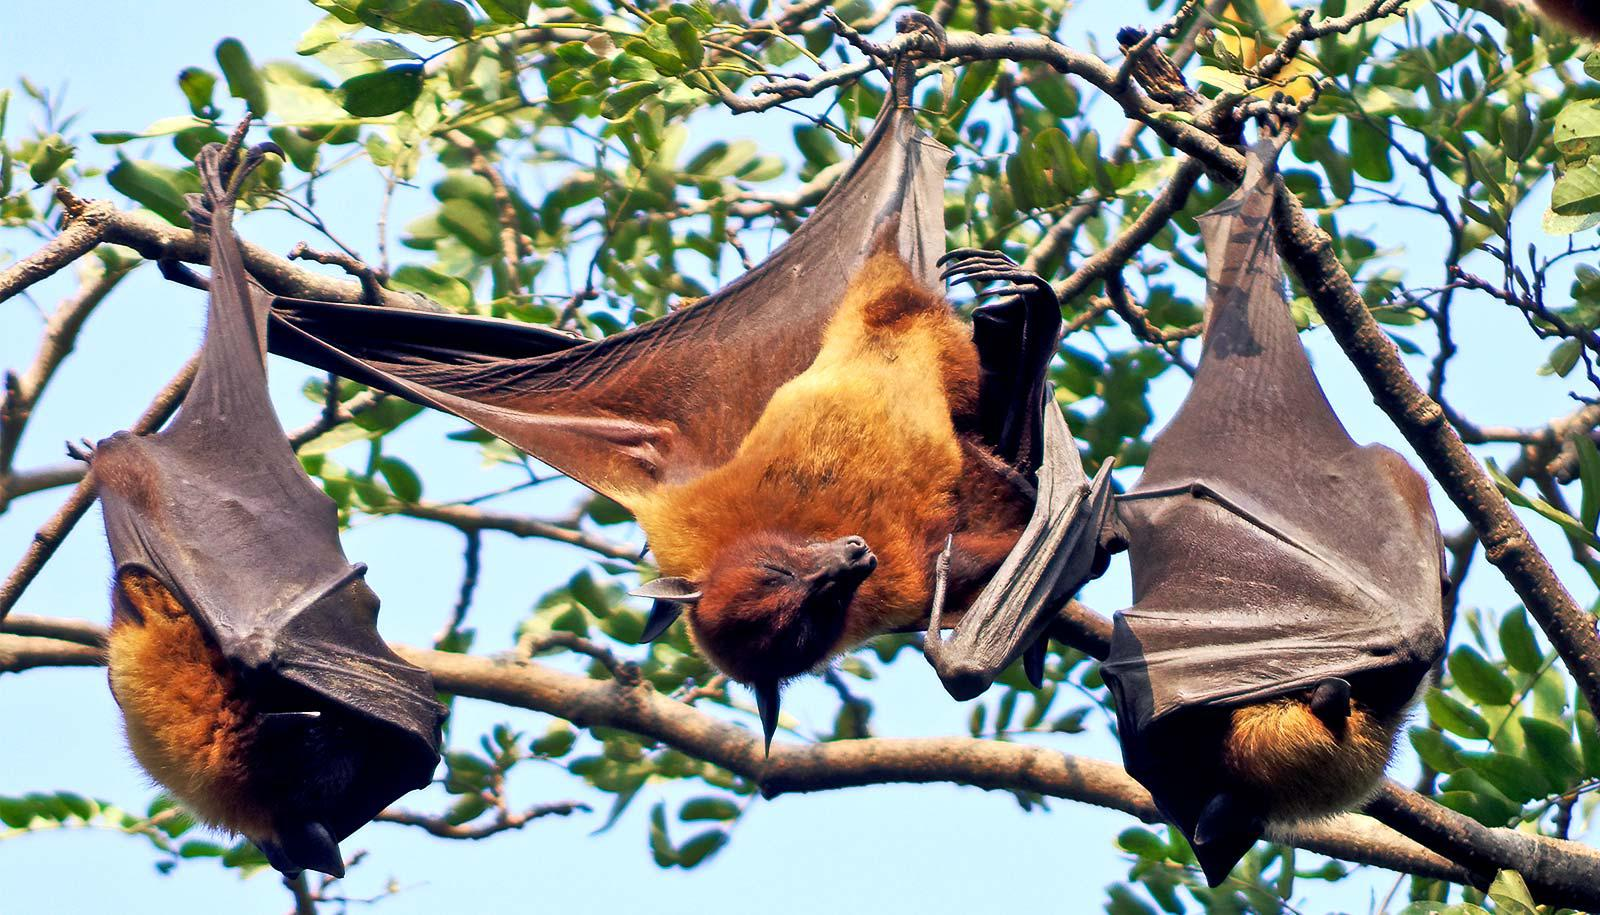 Bats hang from a tree, two asleep and one stretching its wings